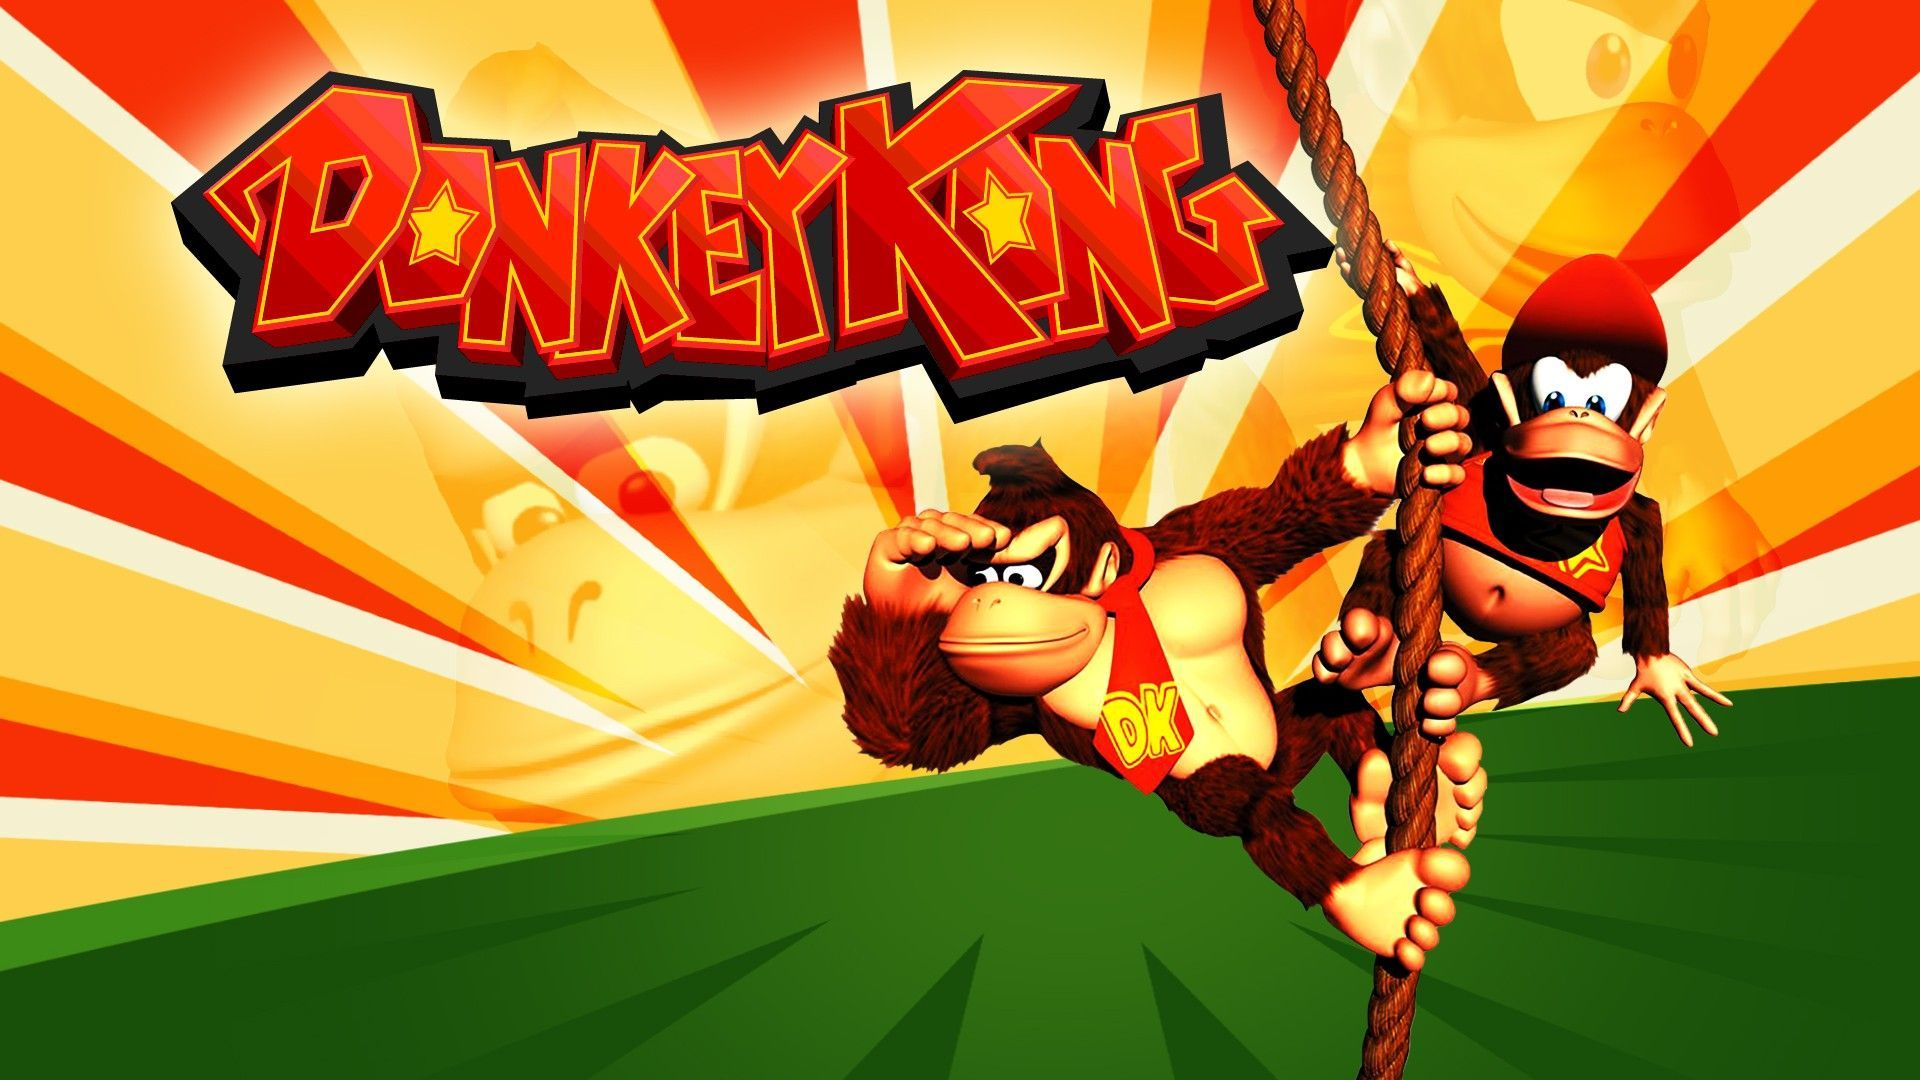 Classic Nes Series Donkey Kong Computer Wallpapers Desktop Backgrounds 1920x1080 Id 532272 Donkey Kong Donkey Kong Country Scooby Doo Images